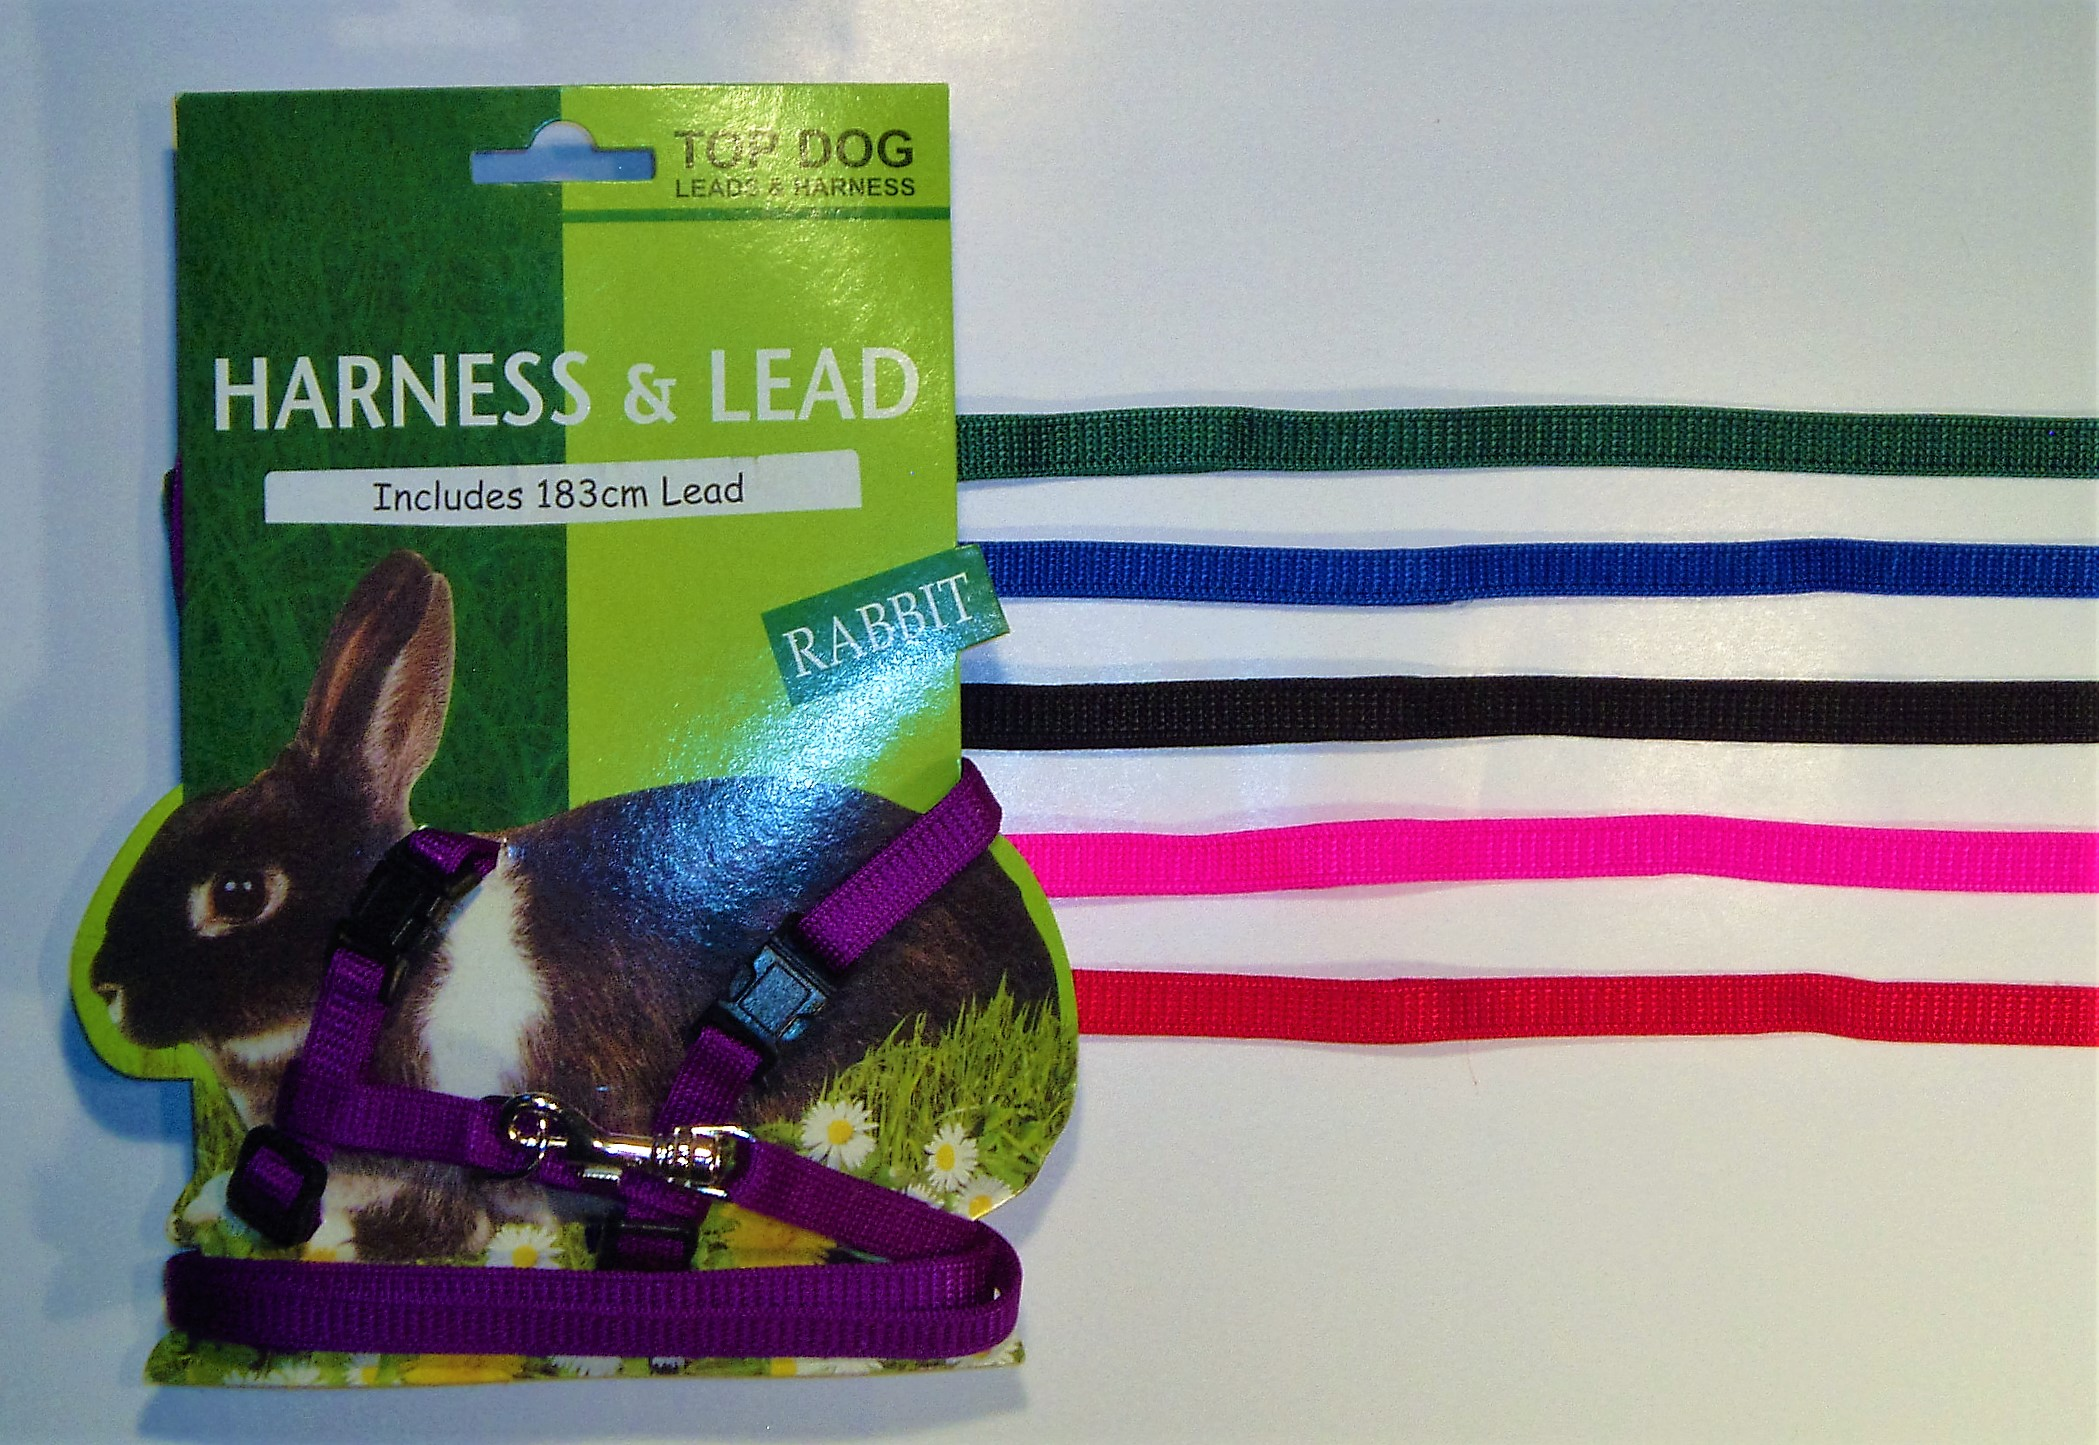 Rabbit Harness with 183cm Lead